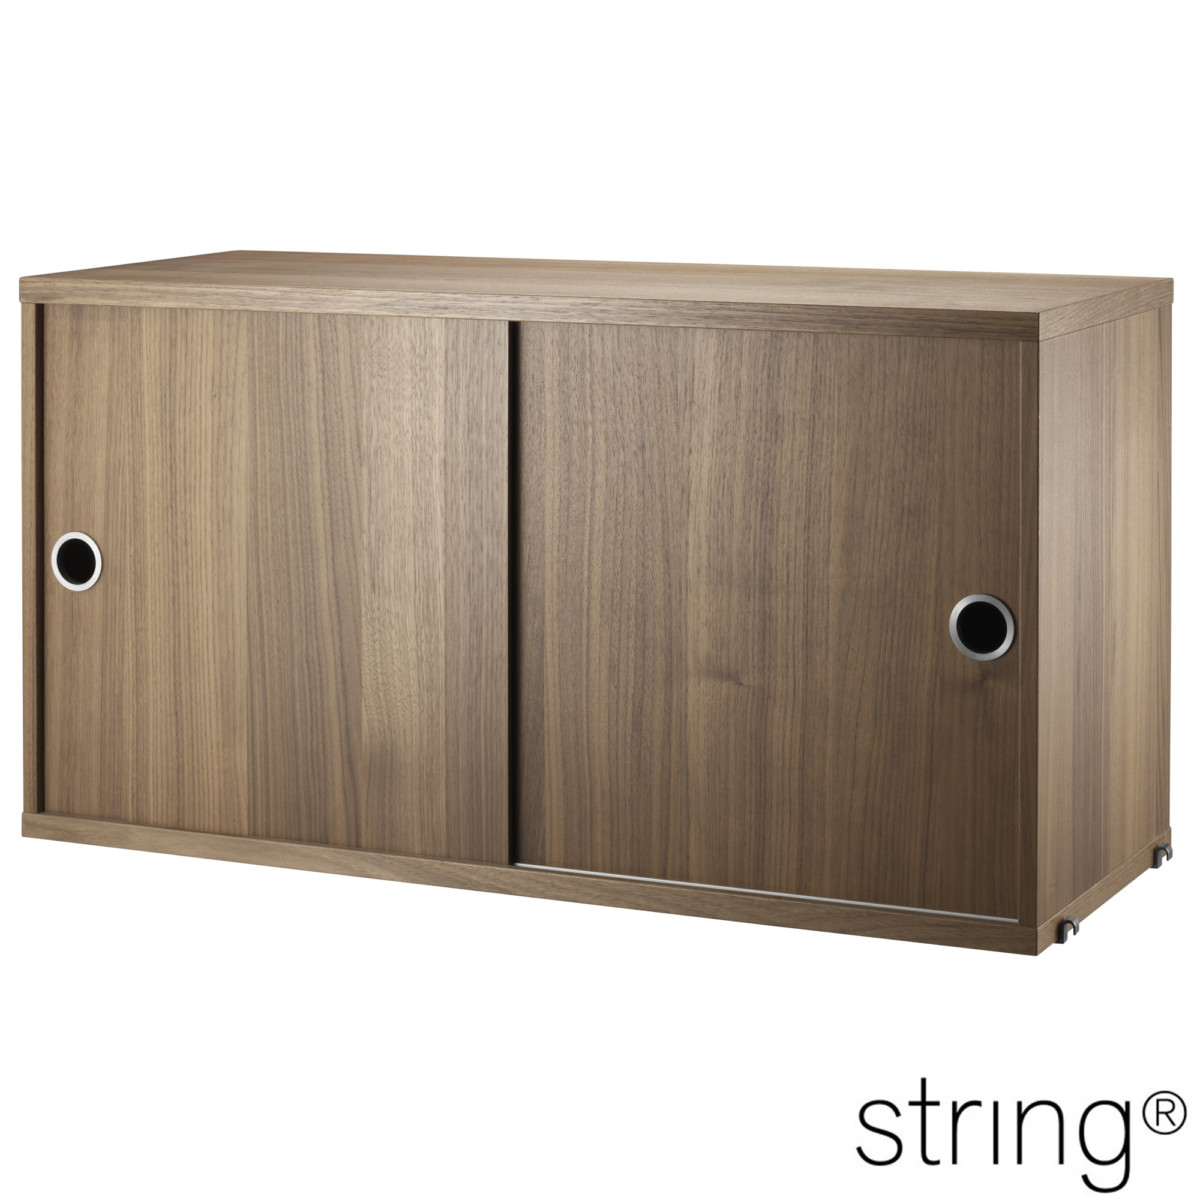 Leiterregal Teak String Schrank Best String With String Schrank Affordable